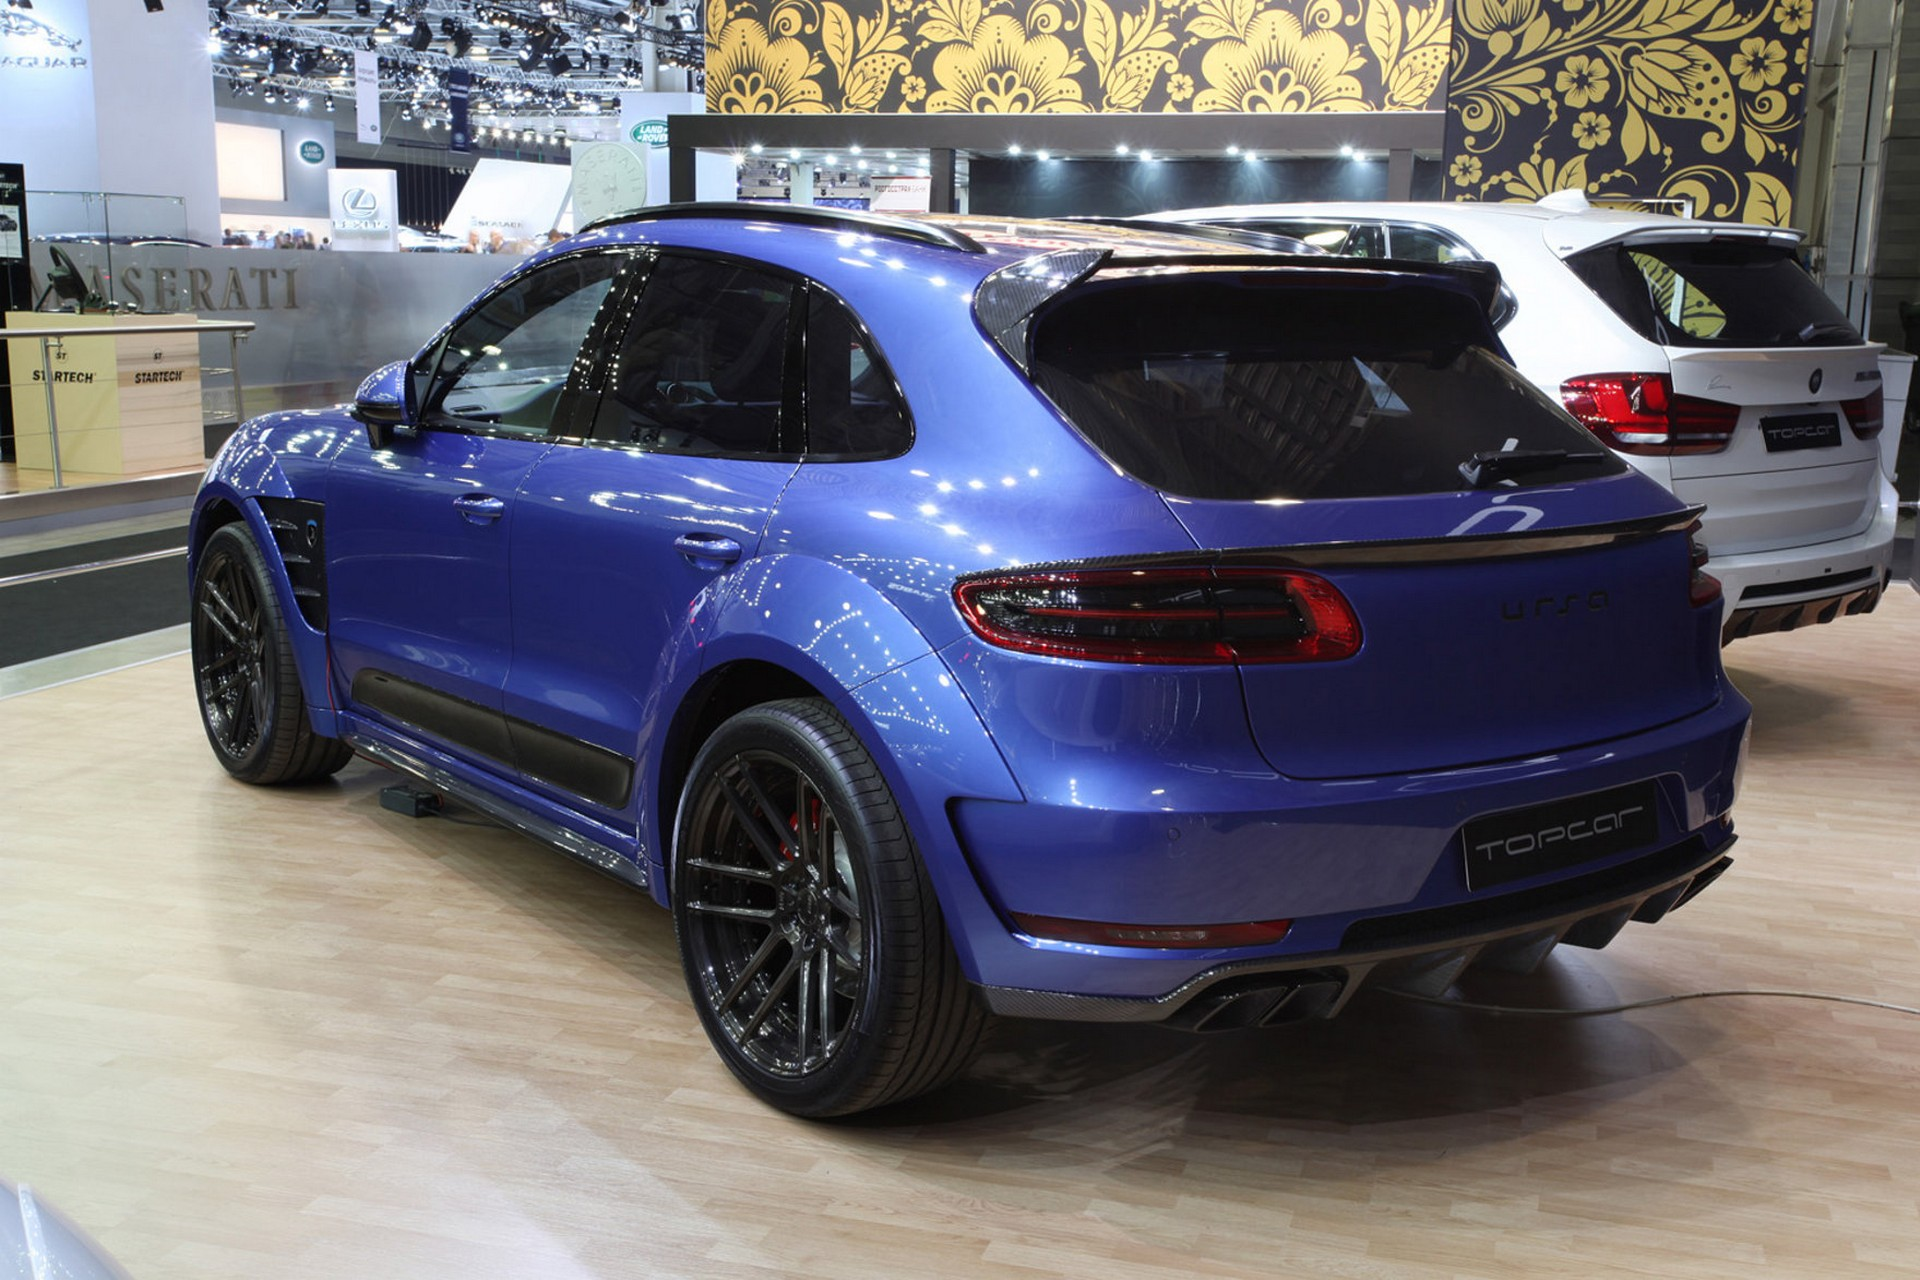 Best Suvs 2014.html/page/contact Us | Autos Post